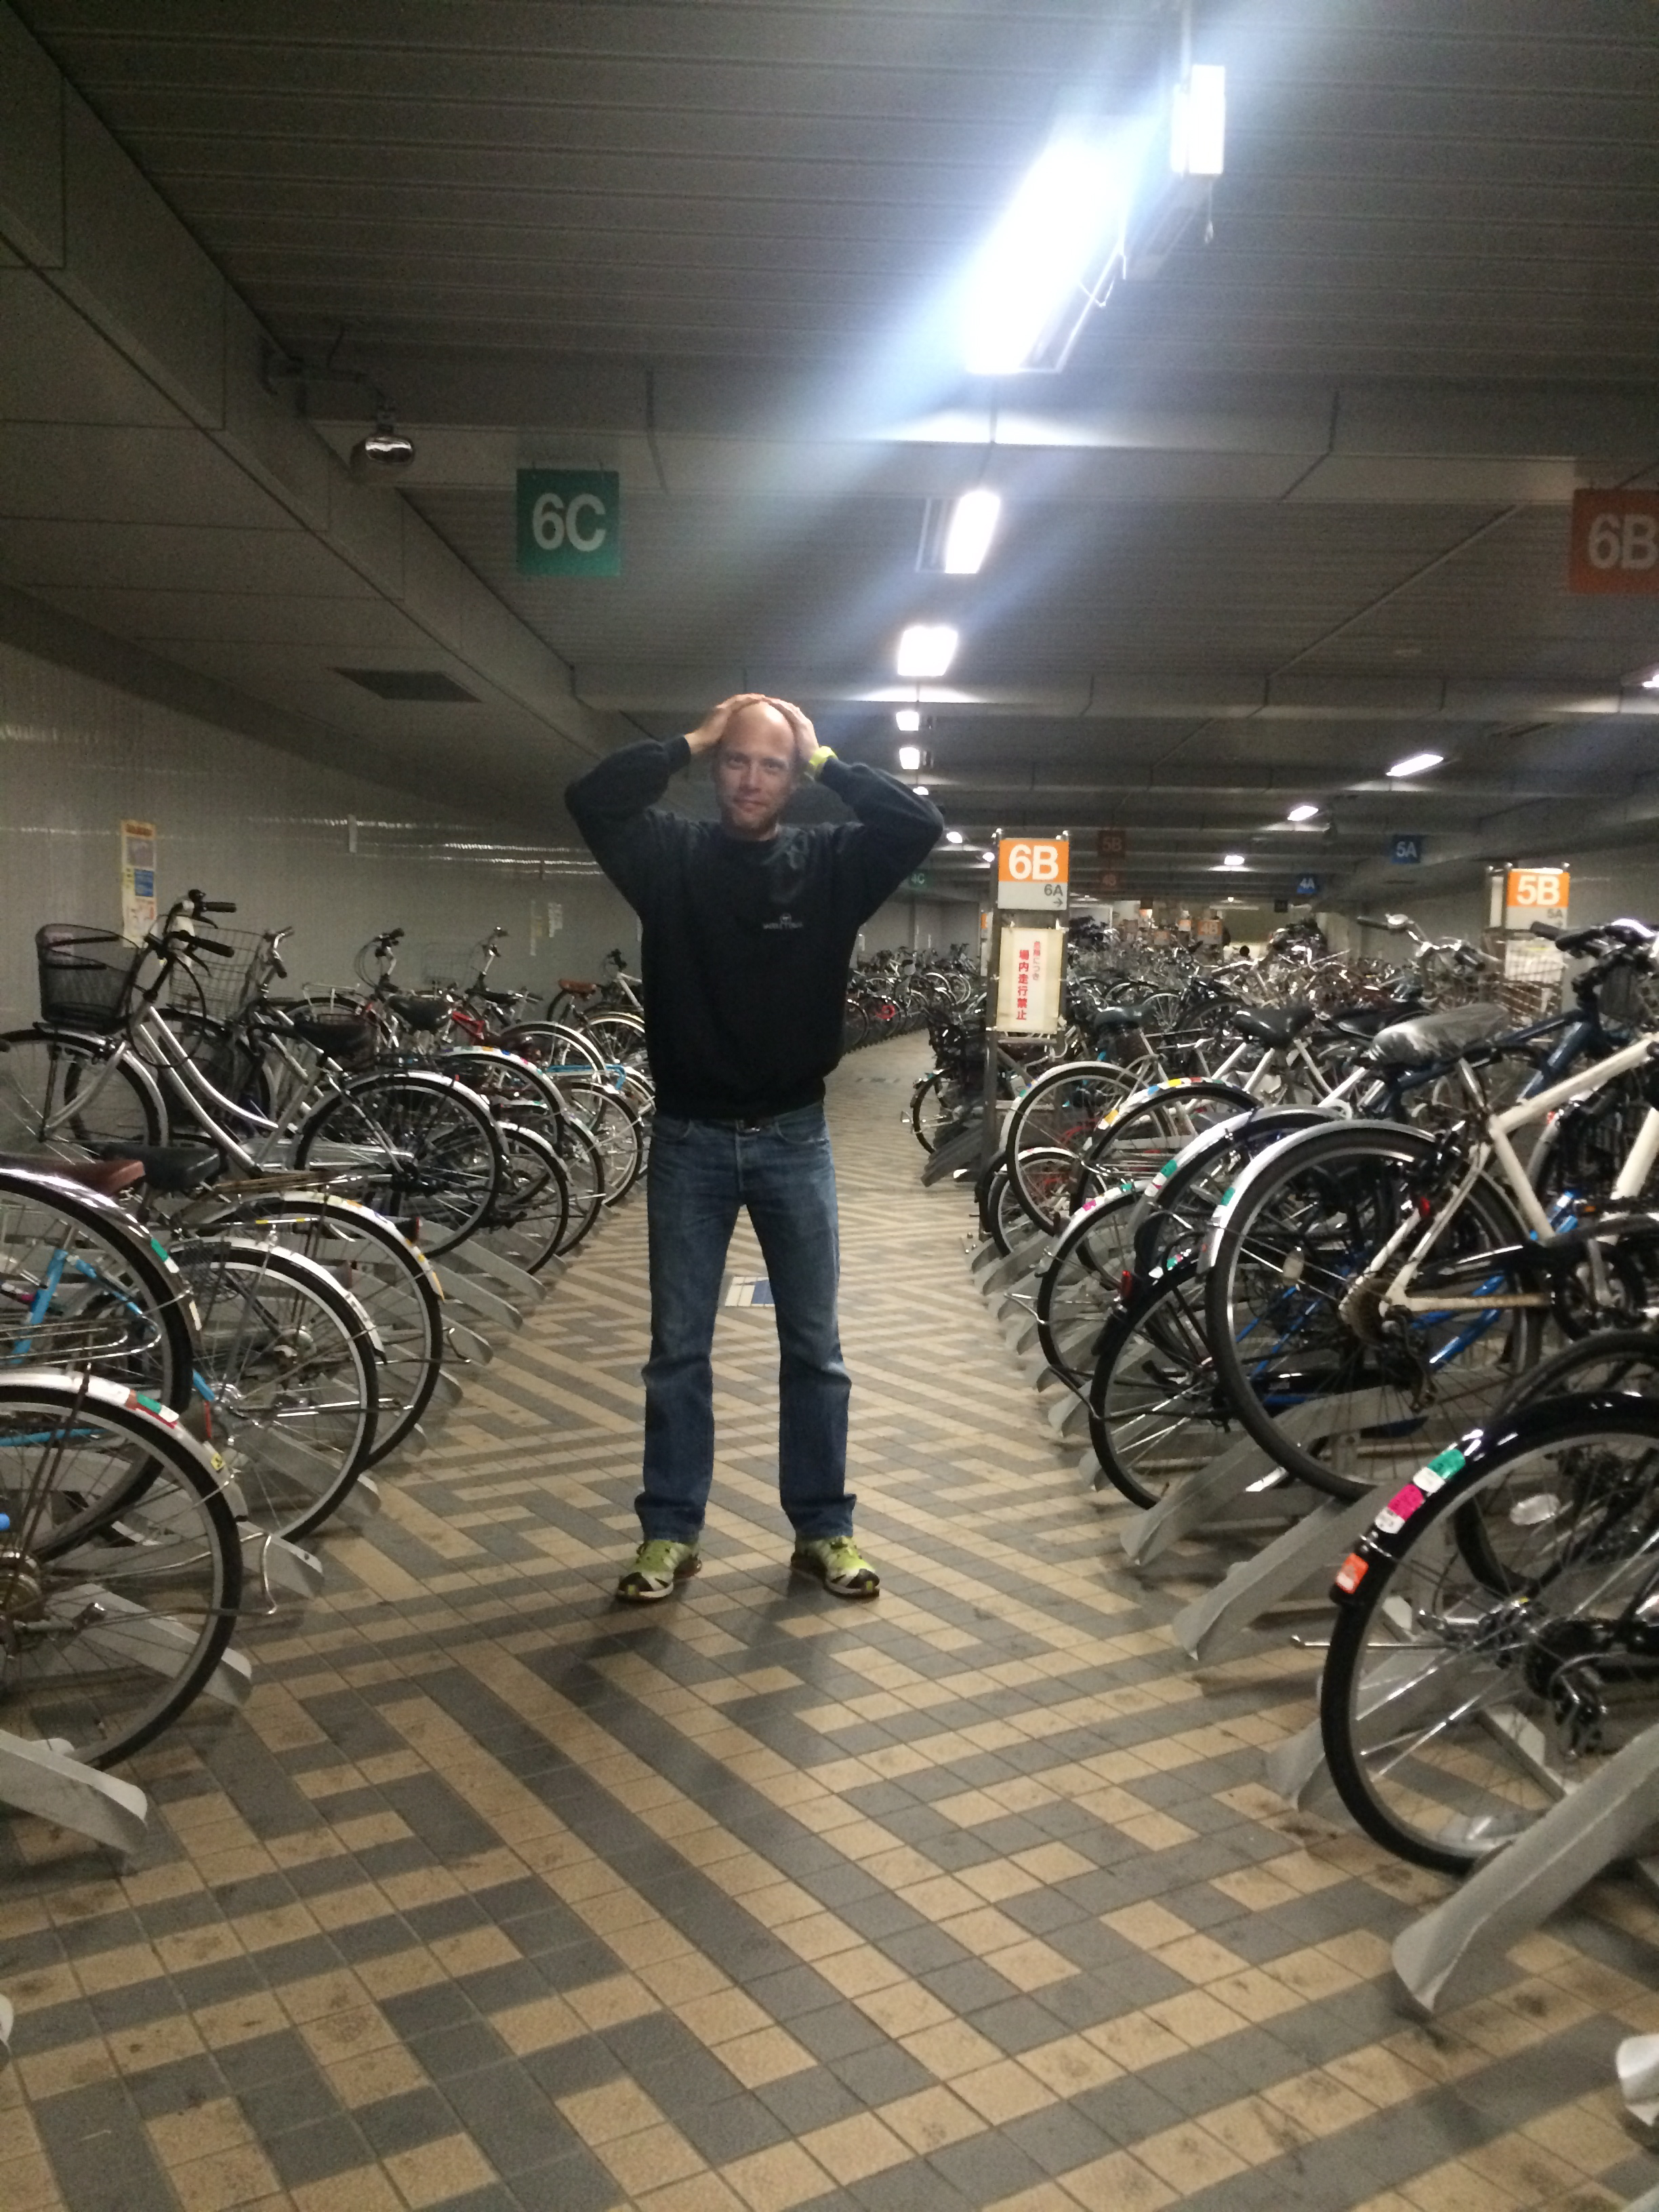 I could not find my bike in this underground bike park